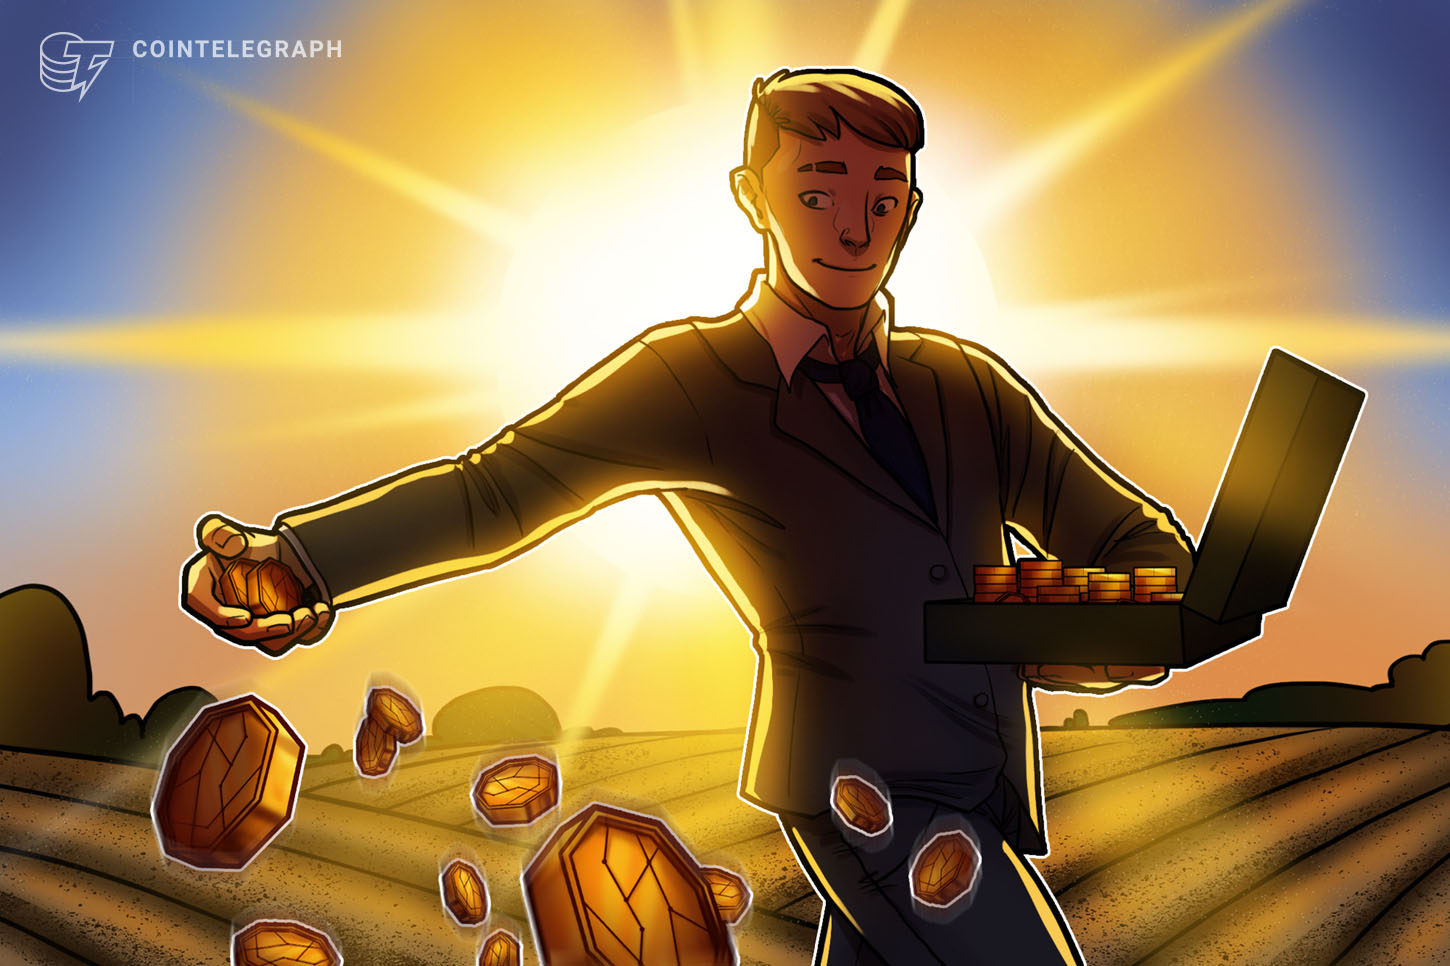 Photo of Custodian with 100,000 users plans to Tokenize $ 13 billion in assets